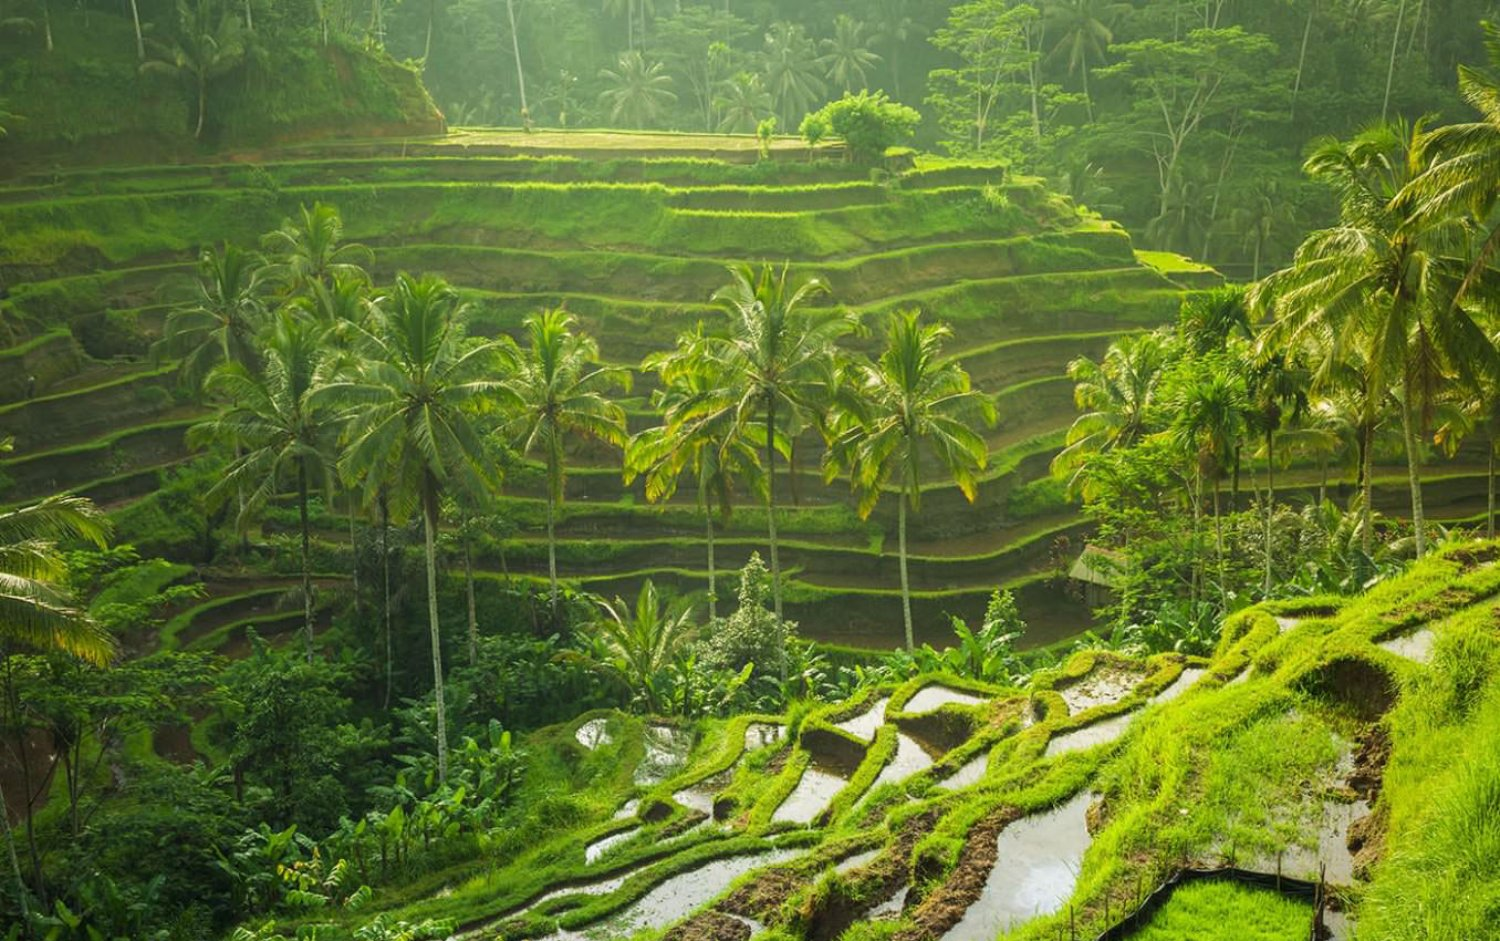 Private Taxi Service from Ubud to Tegalalang Rice Terrace